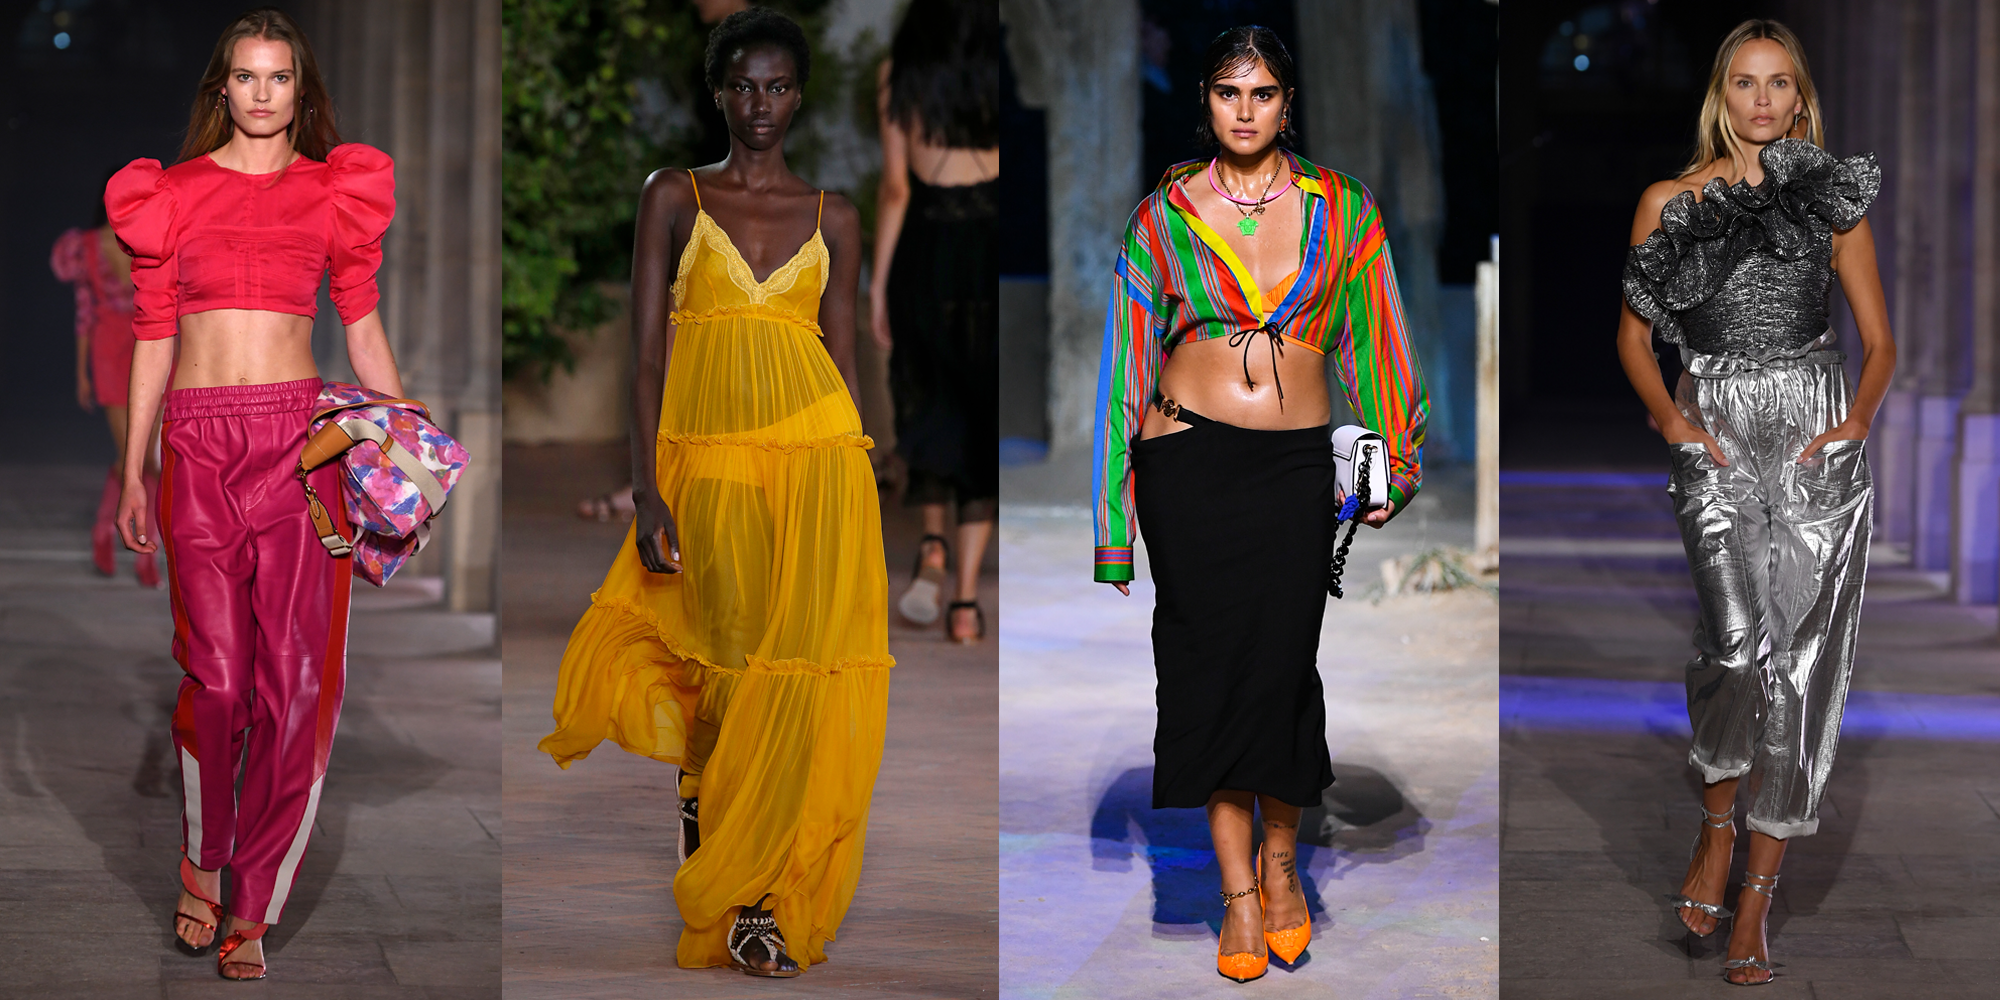 9 spring summer 2021 fashion trends to know: Summer fashion guide